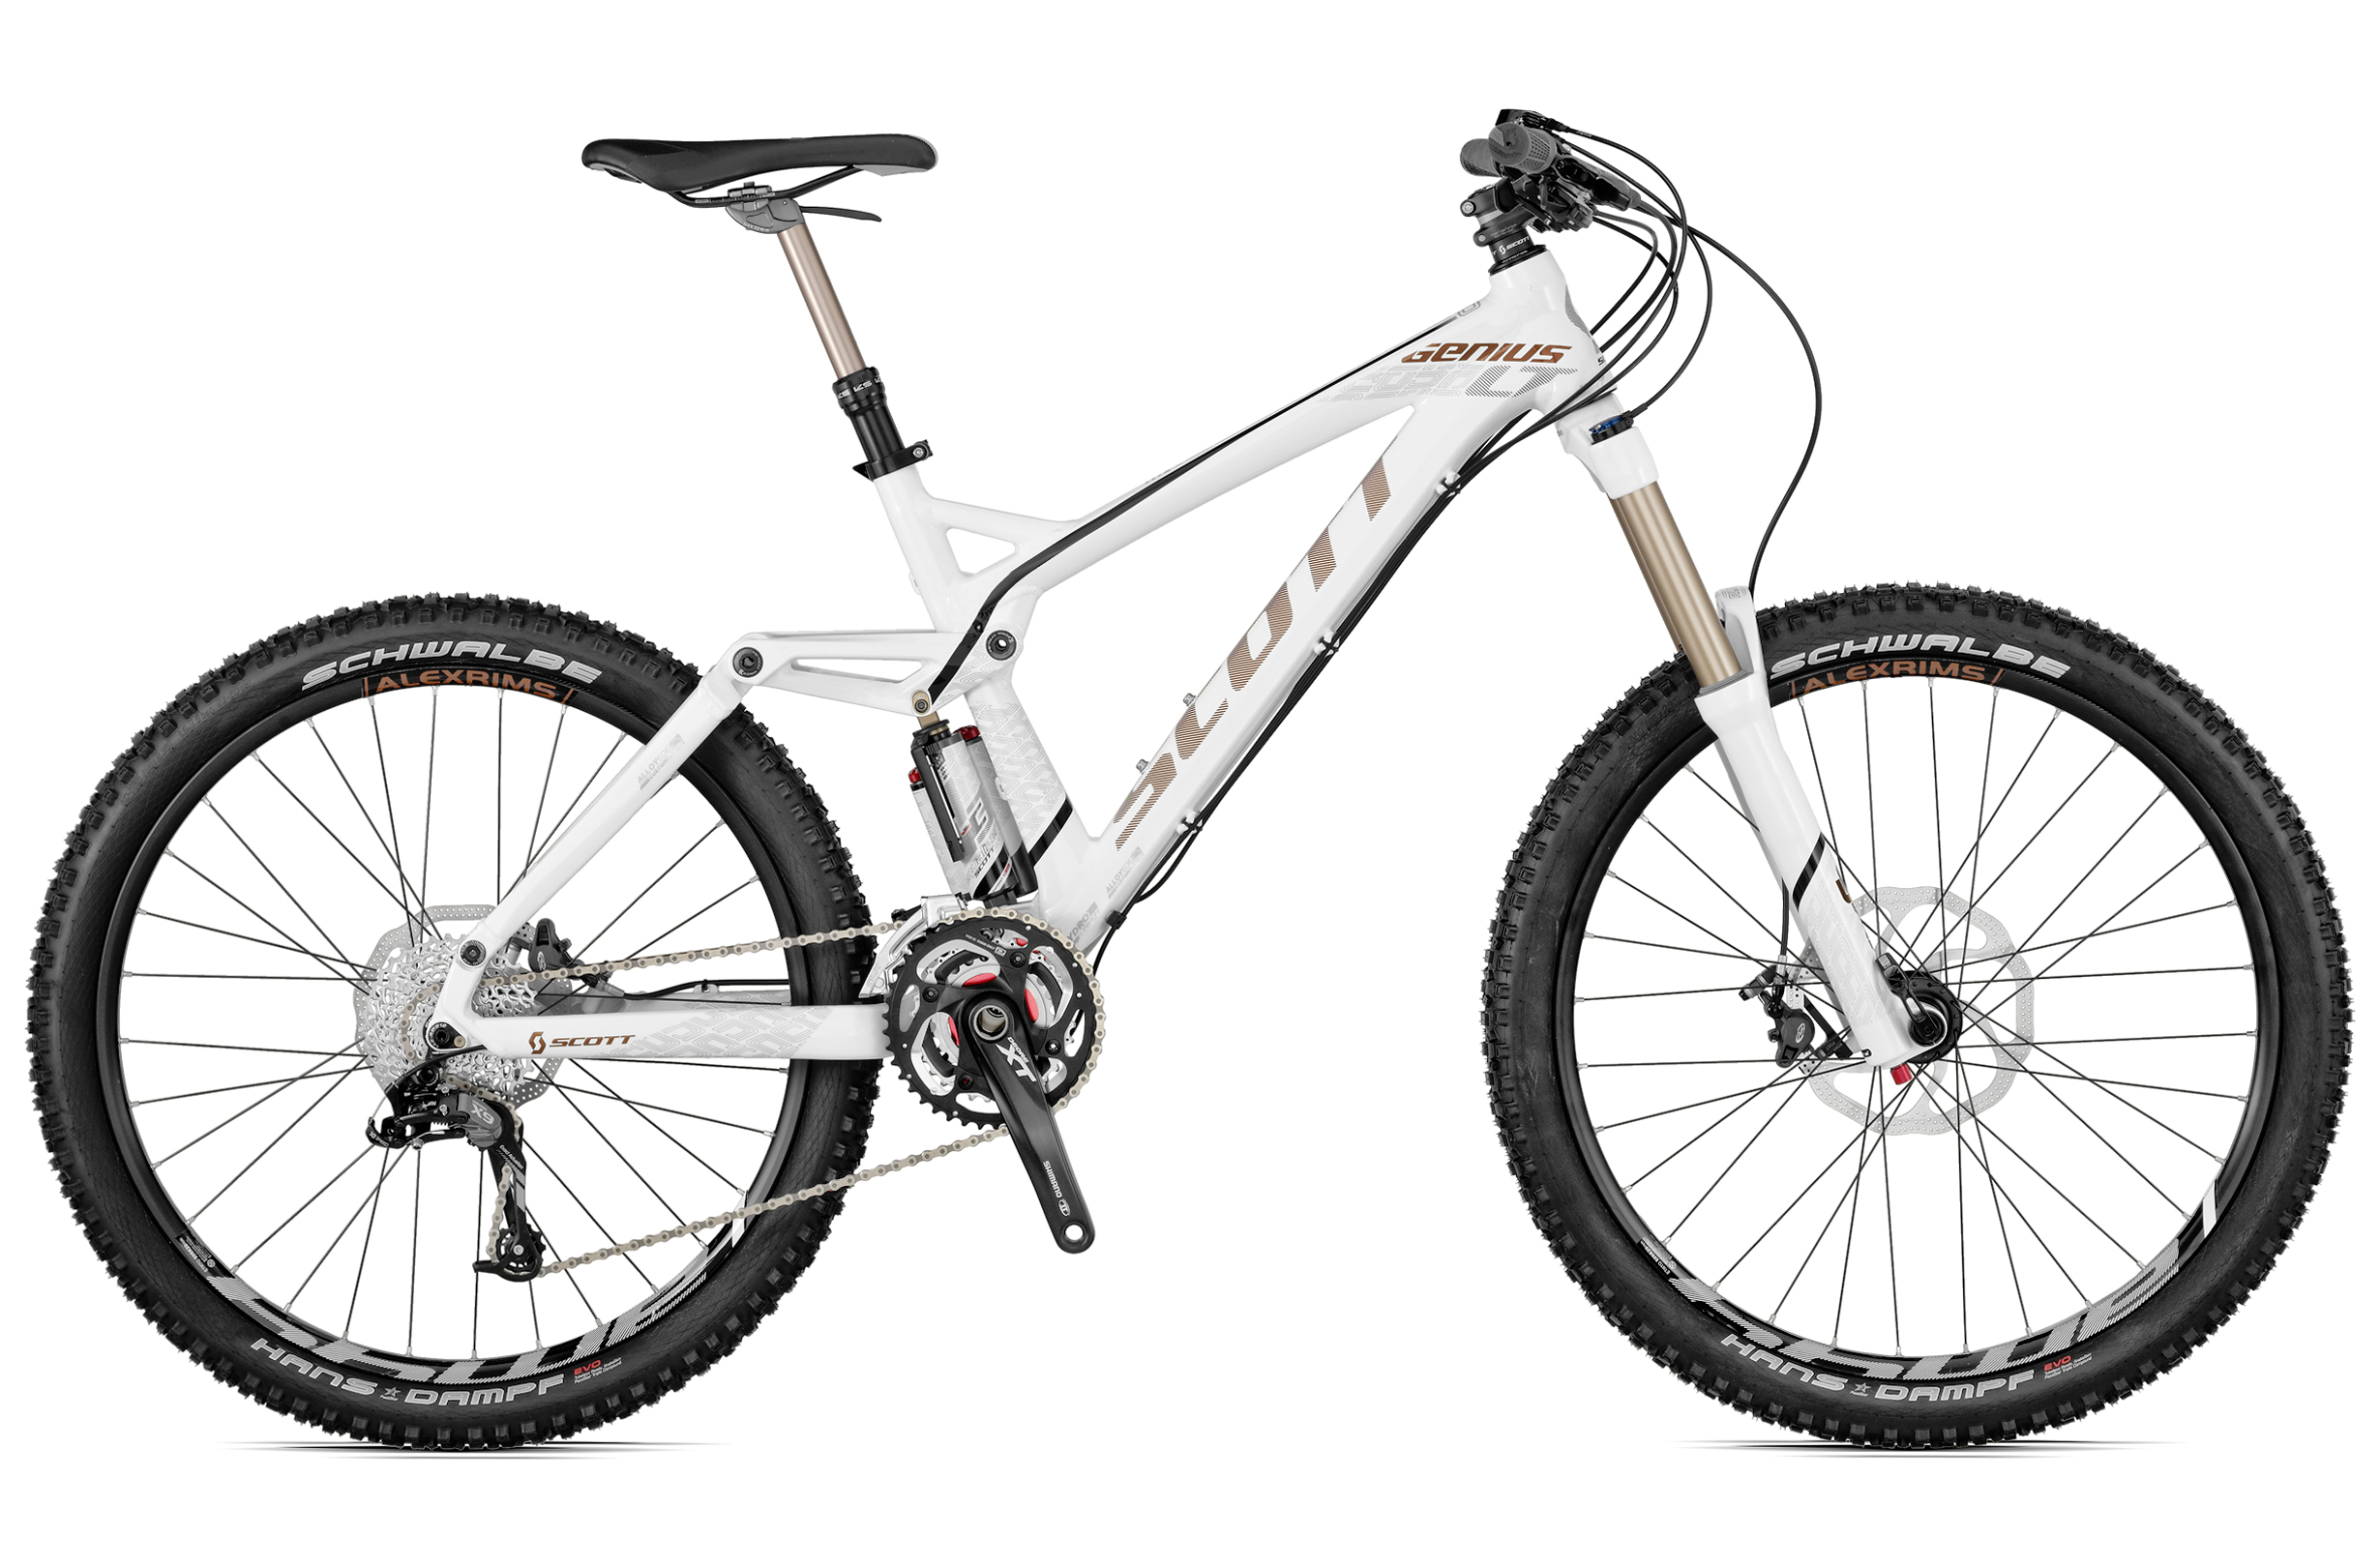 scott-genius-lt-30-2012-mountain-bike-EV153002-9999-1